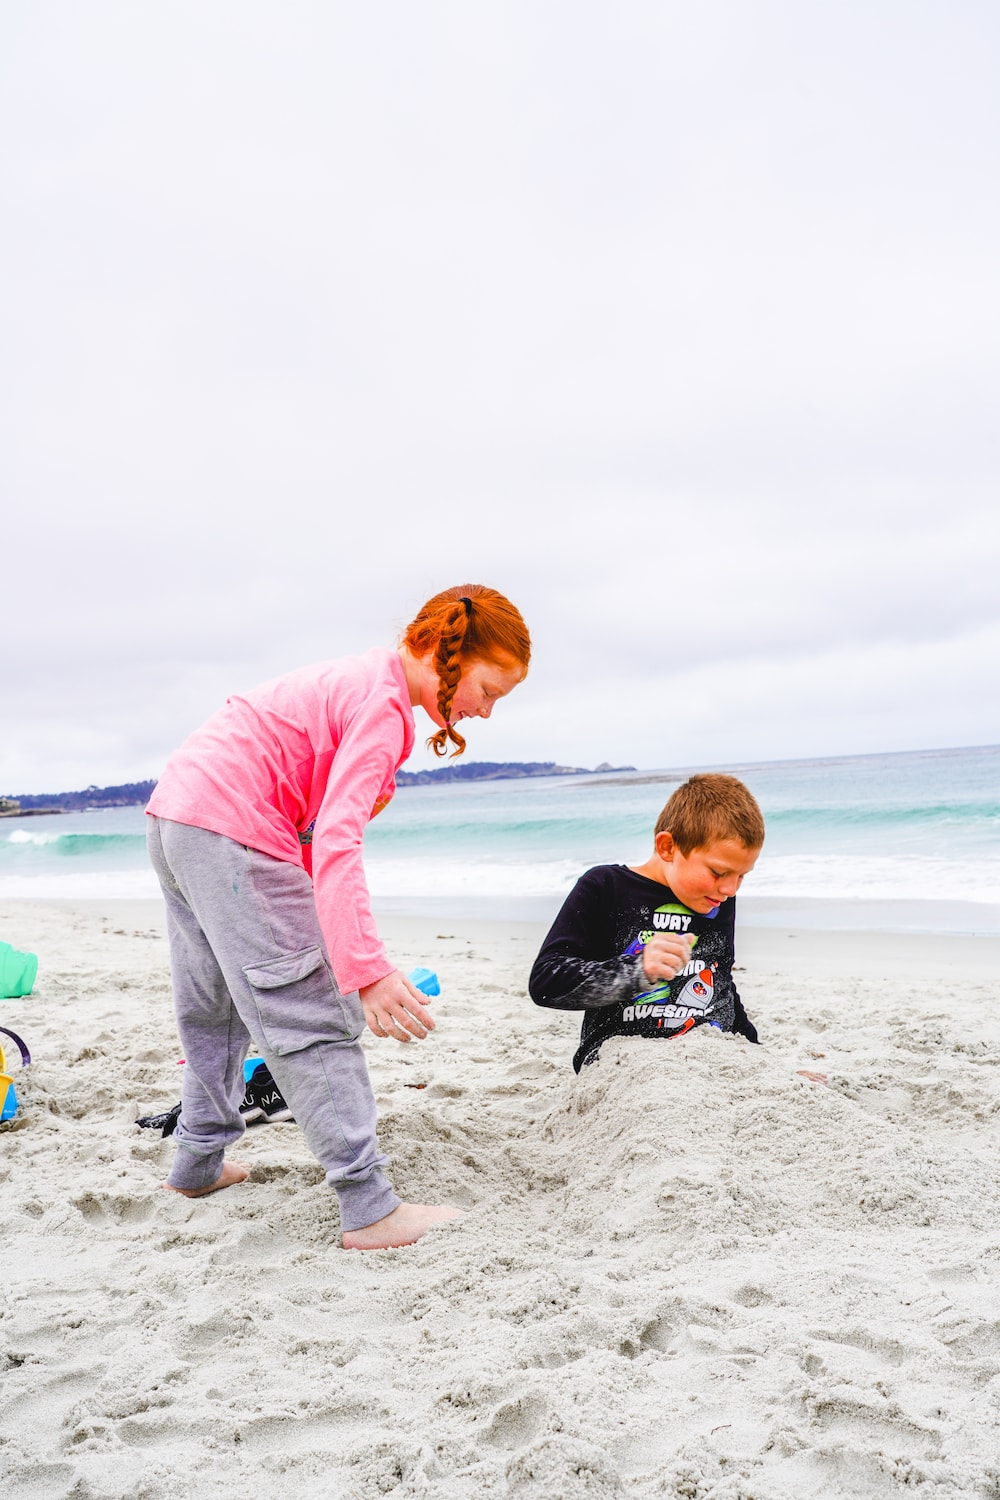 A boy and girl playing in the sand at Carmel Beach